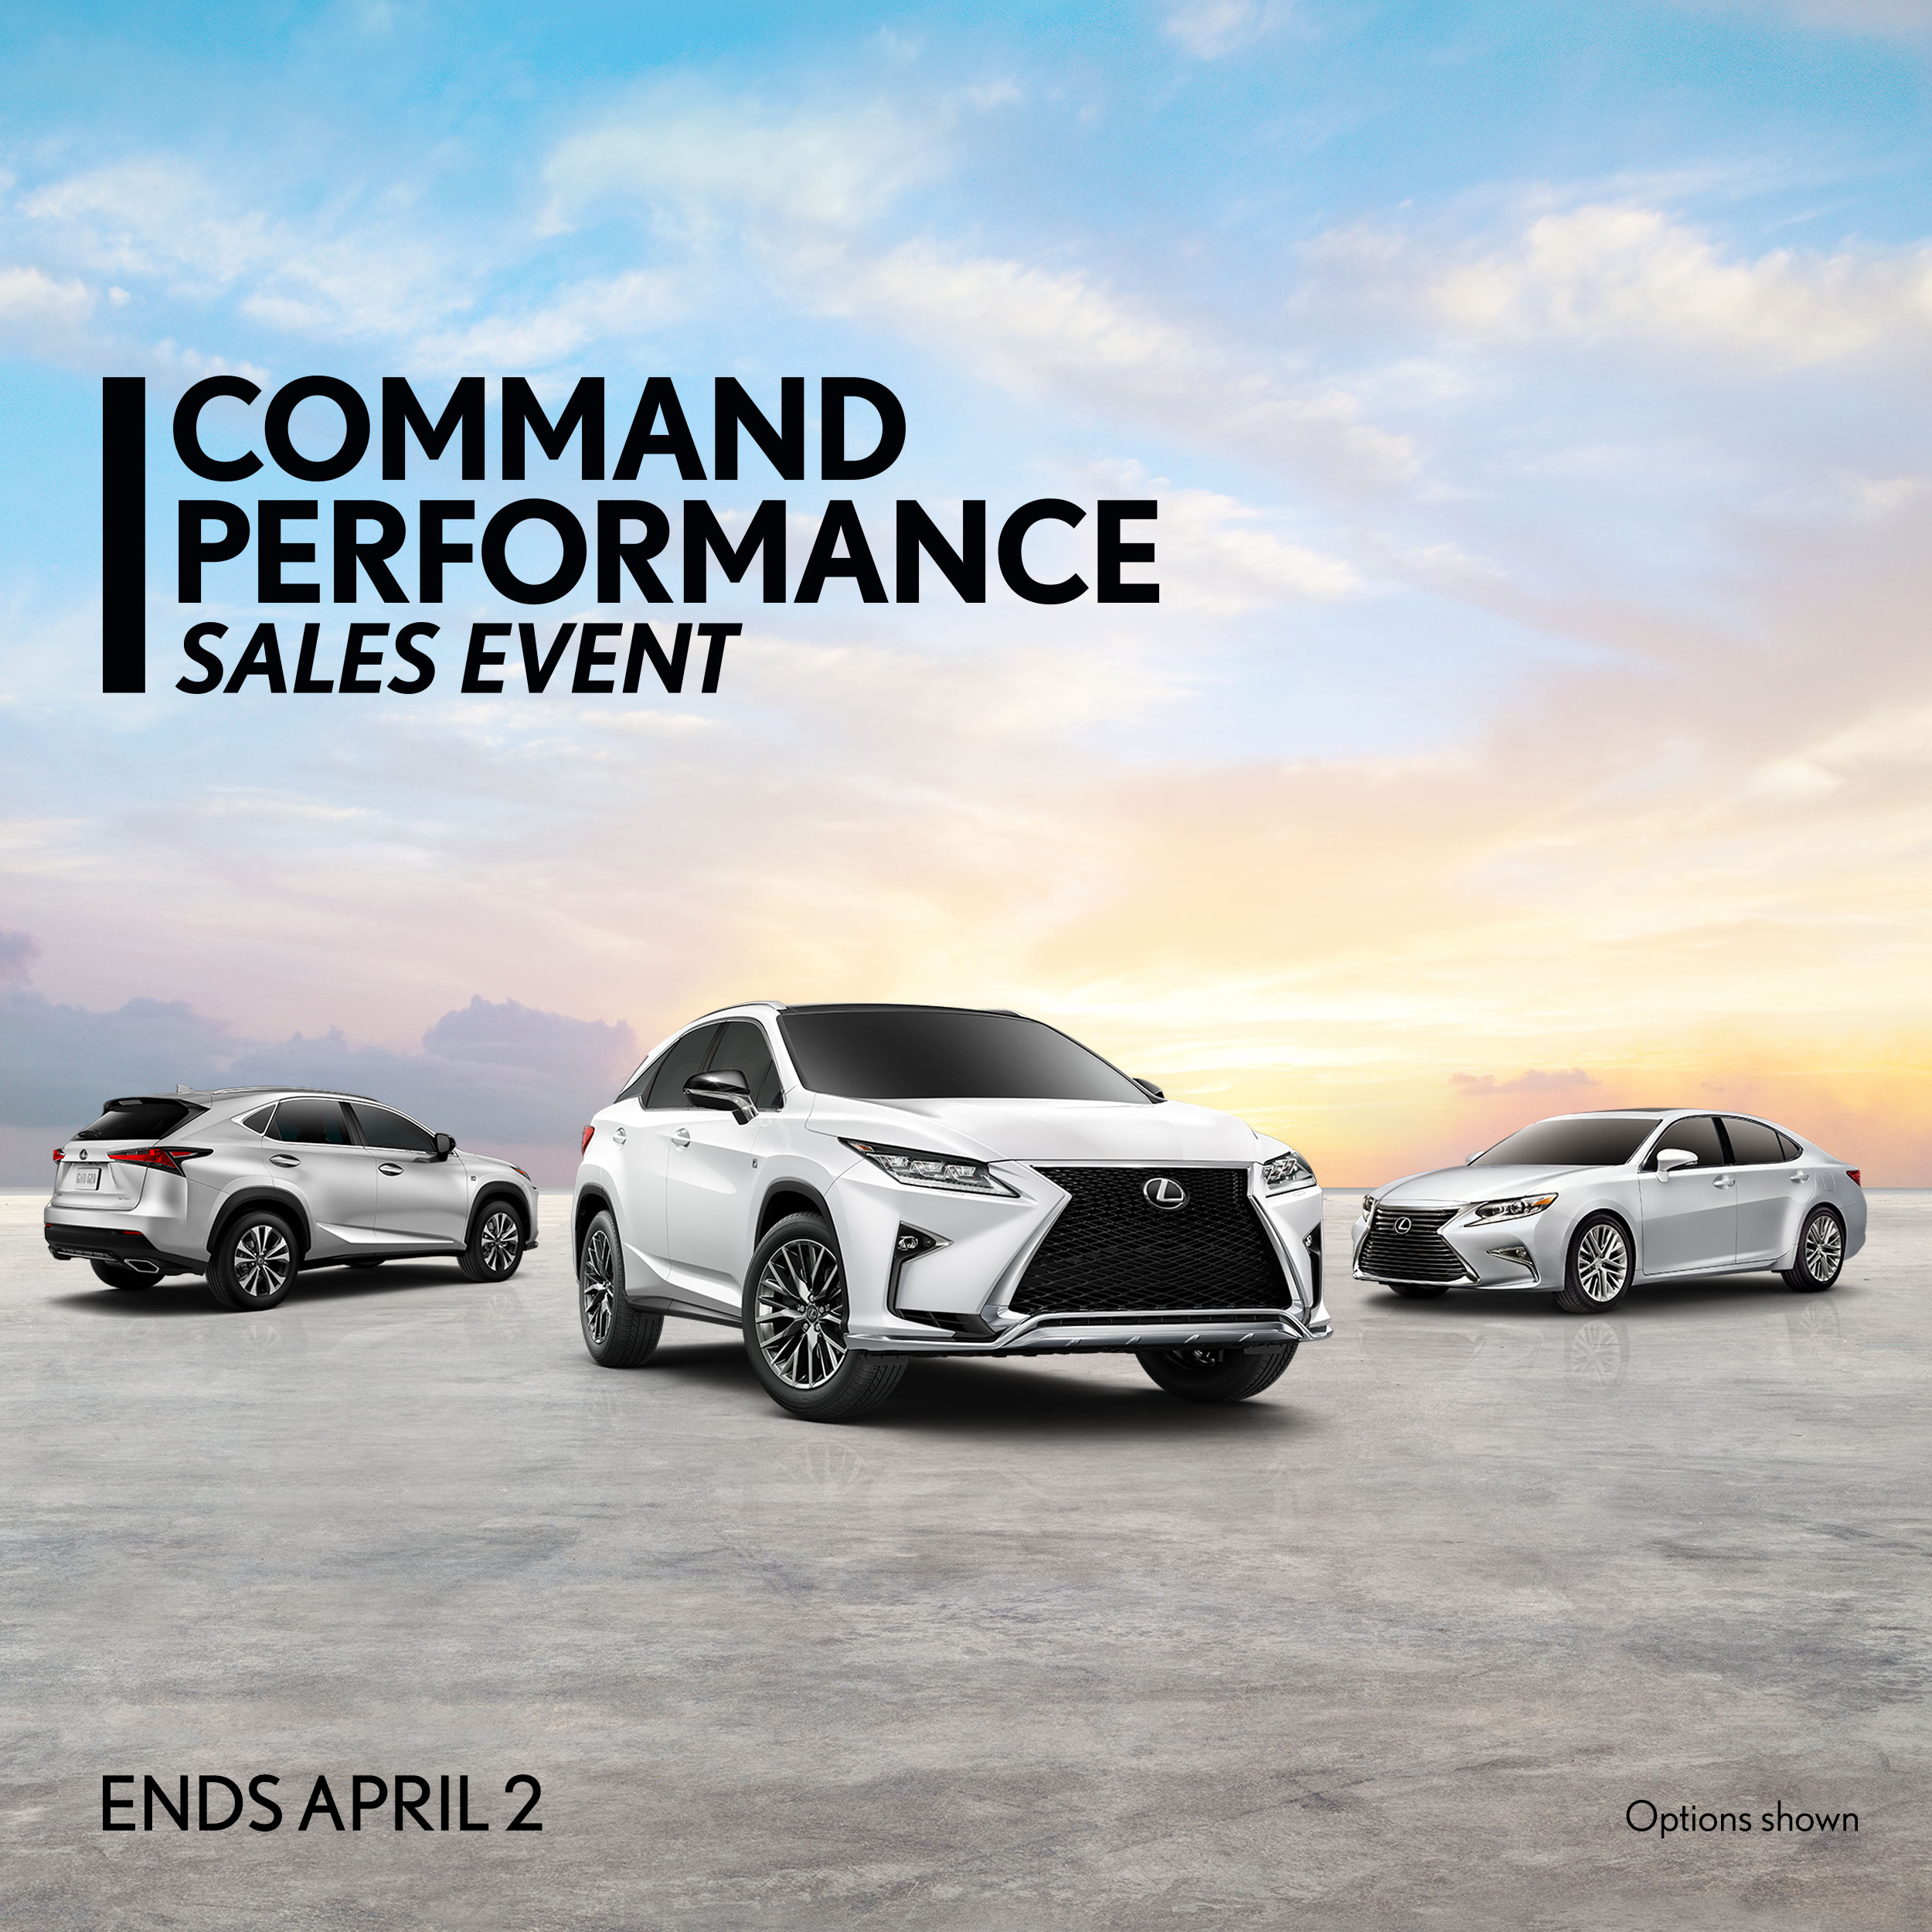 Jm Lexus Pre Owned >> Welcome to JM Lexus in Margate, FL | New & Pre-Owned Lexus Sales